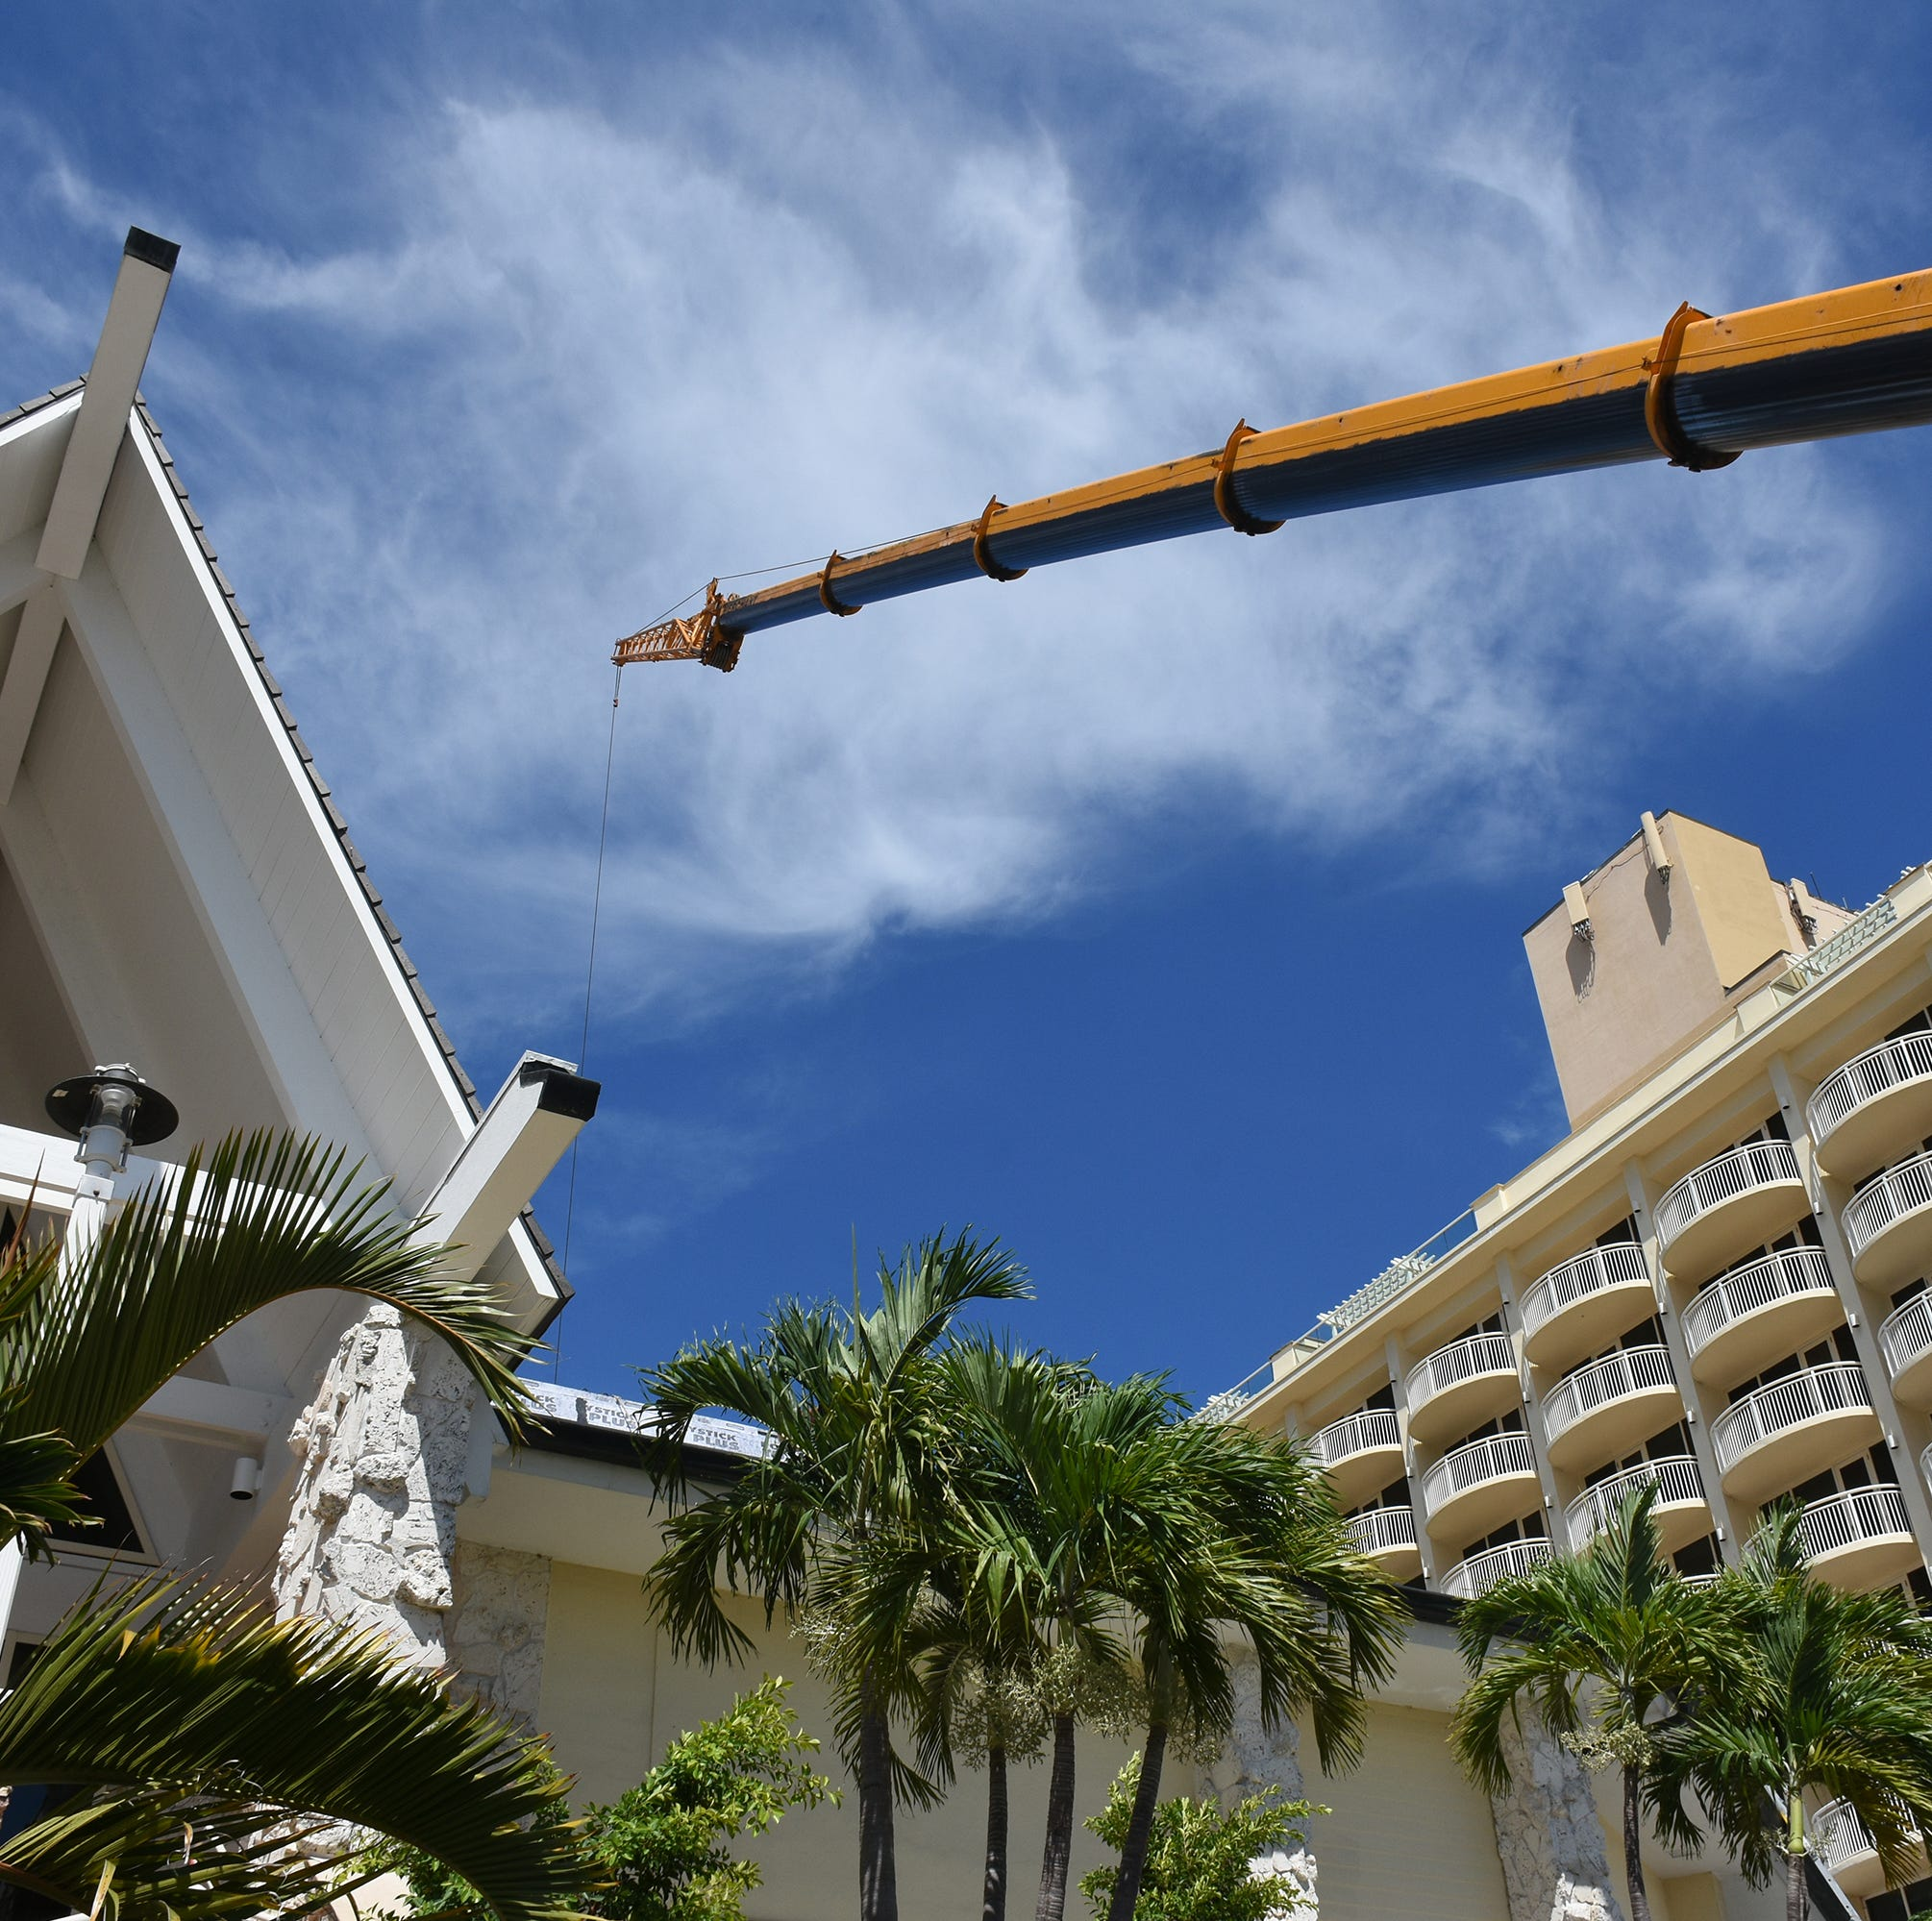 The finishing touches: JW Marriott works to complete renovations for season